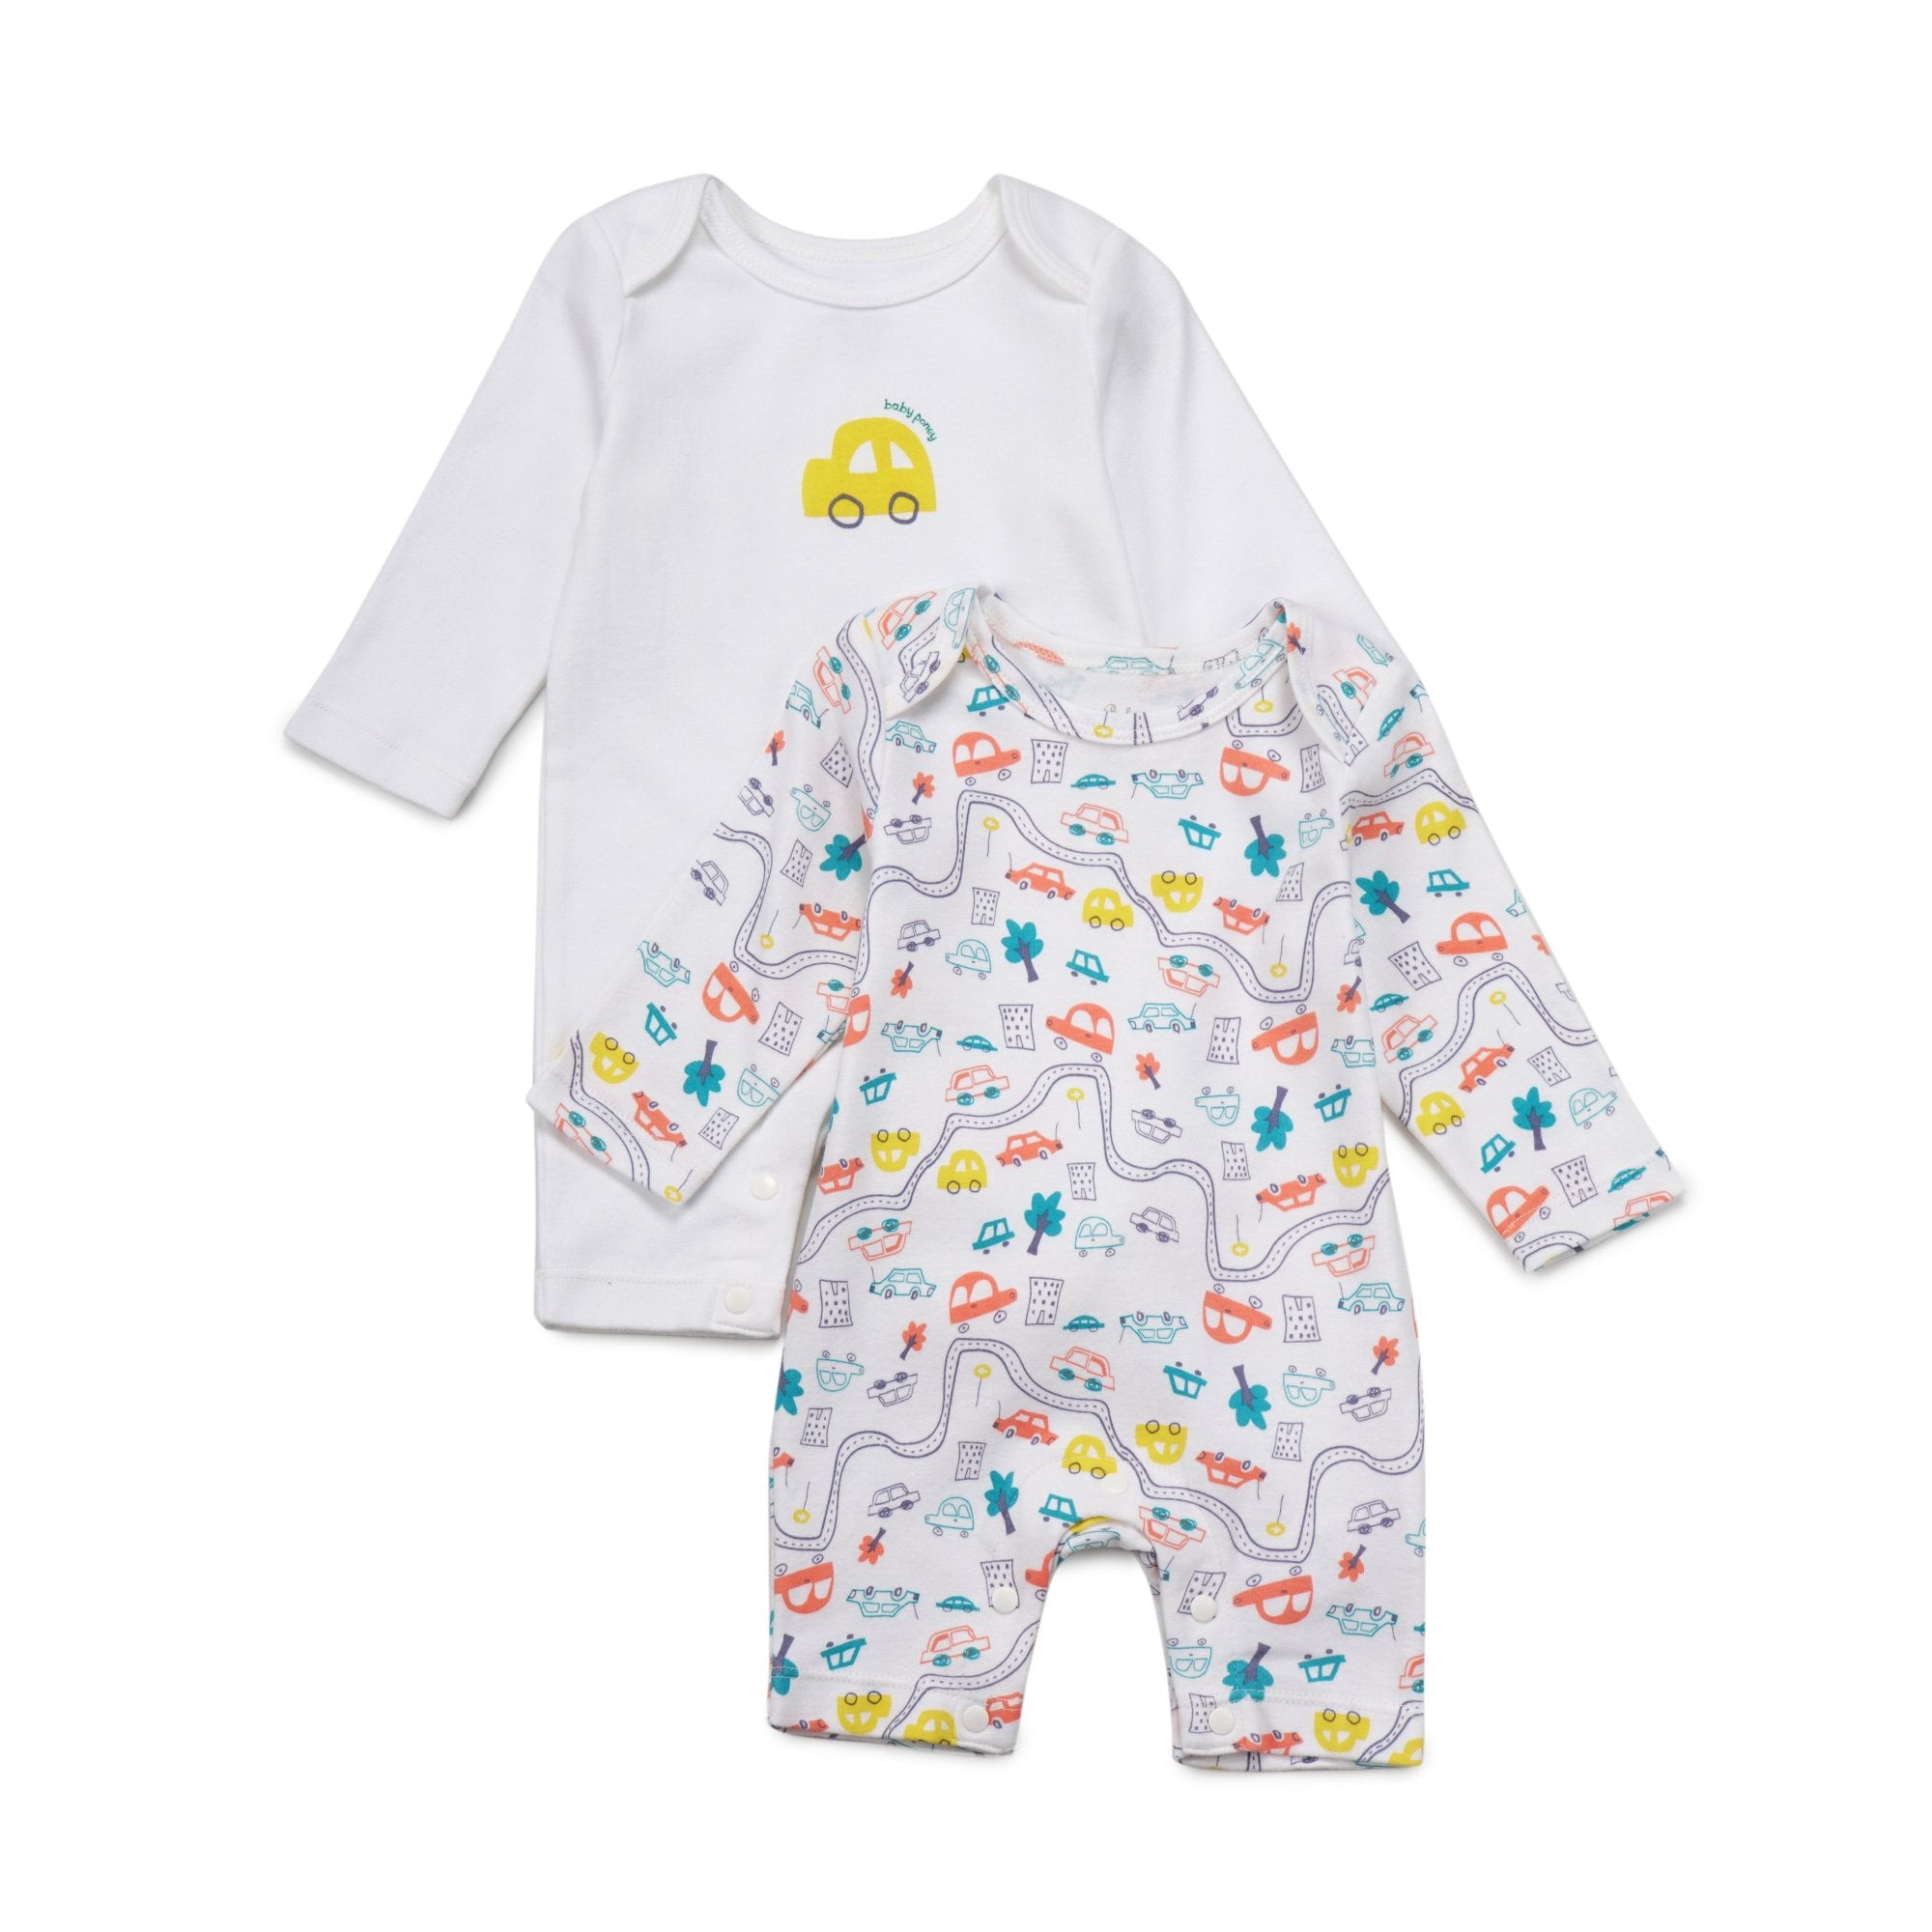 Poney Essential Boys 2-Pack Sleepsuits 80017